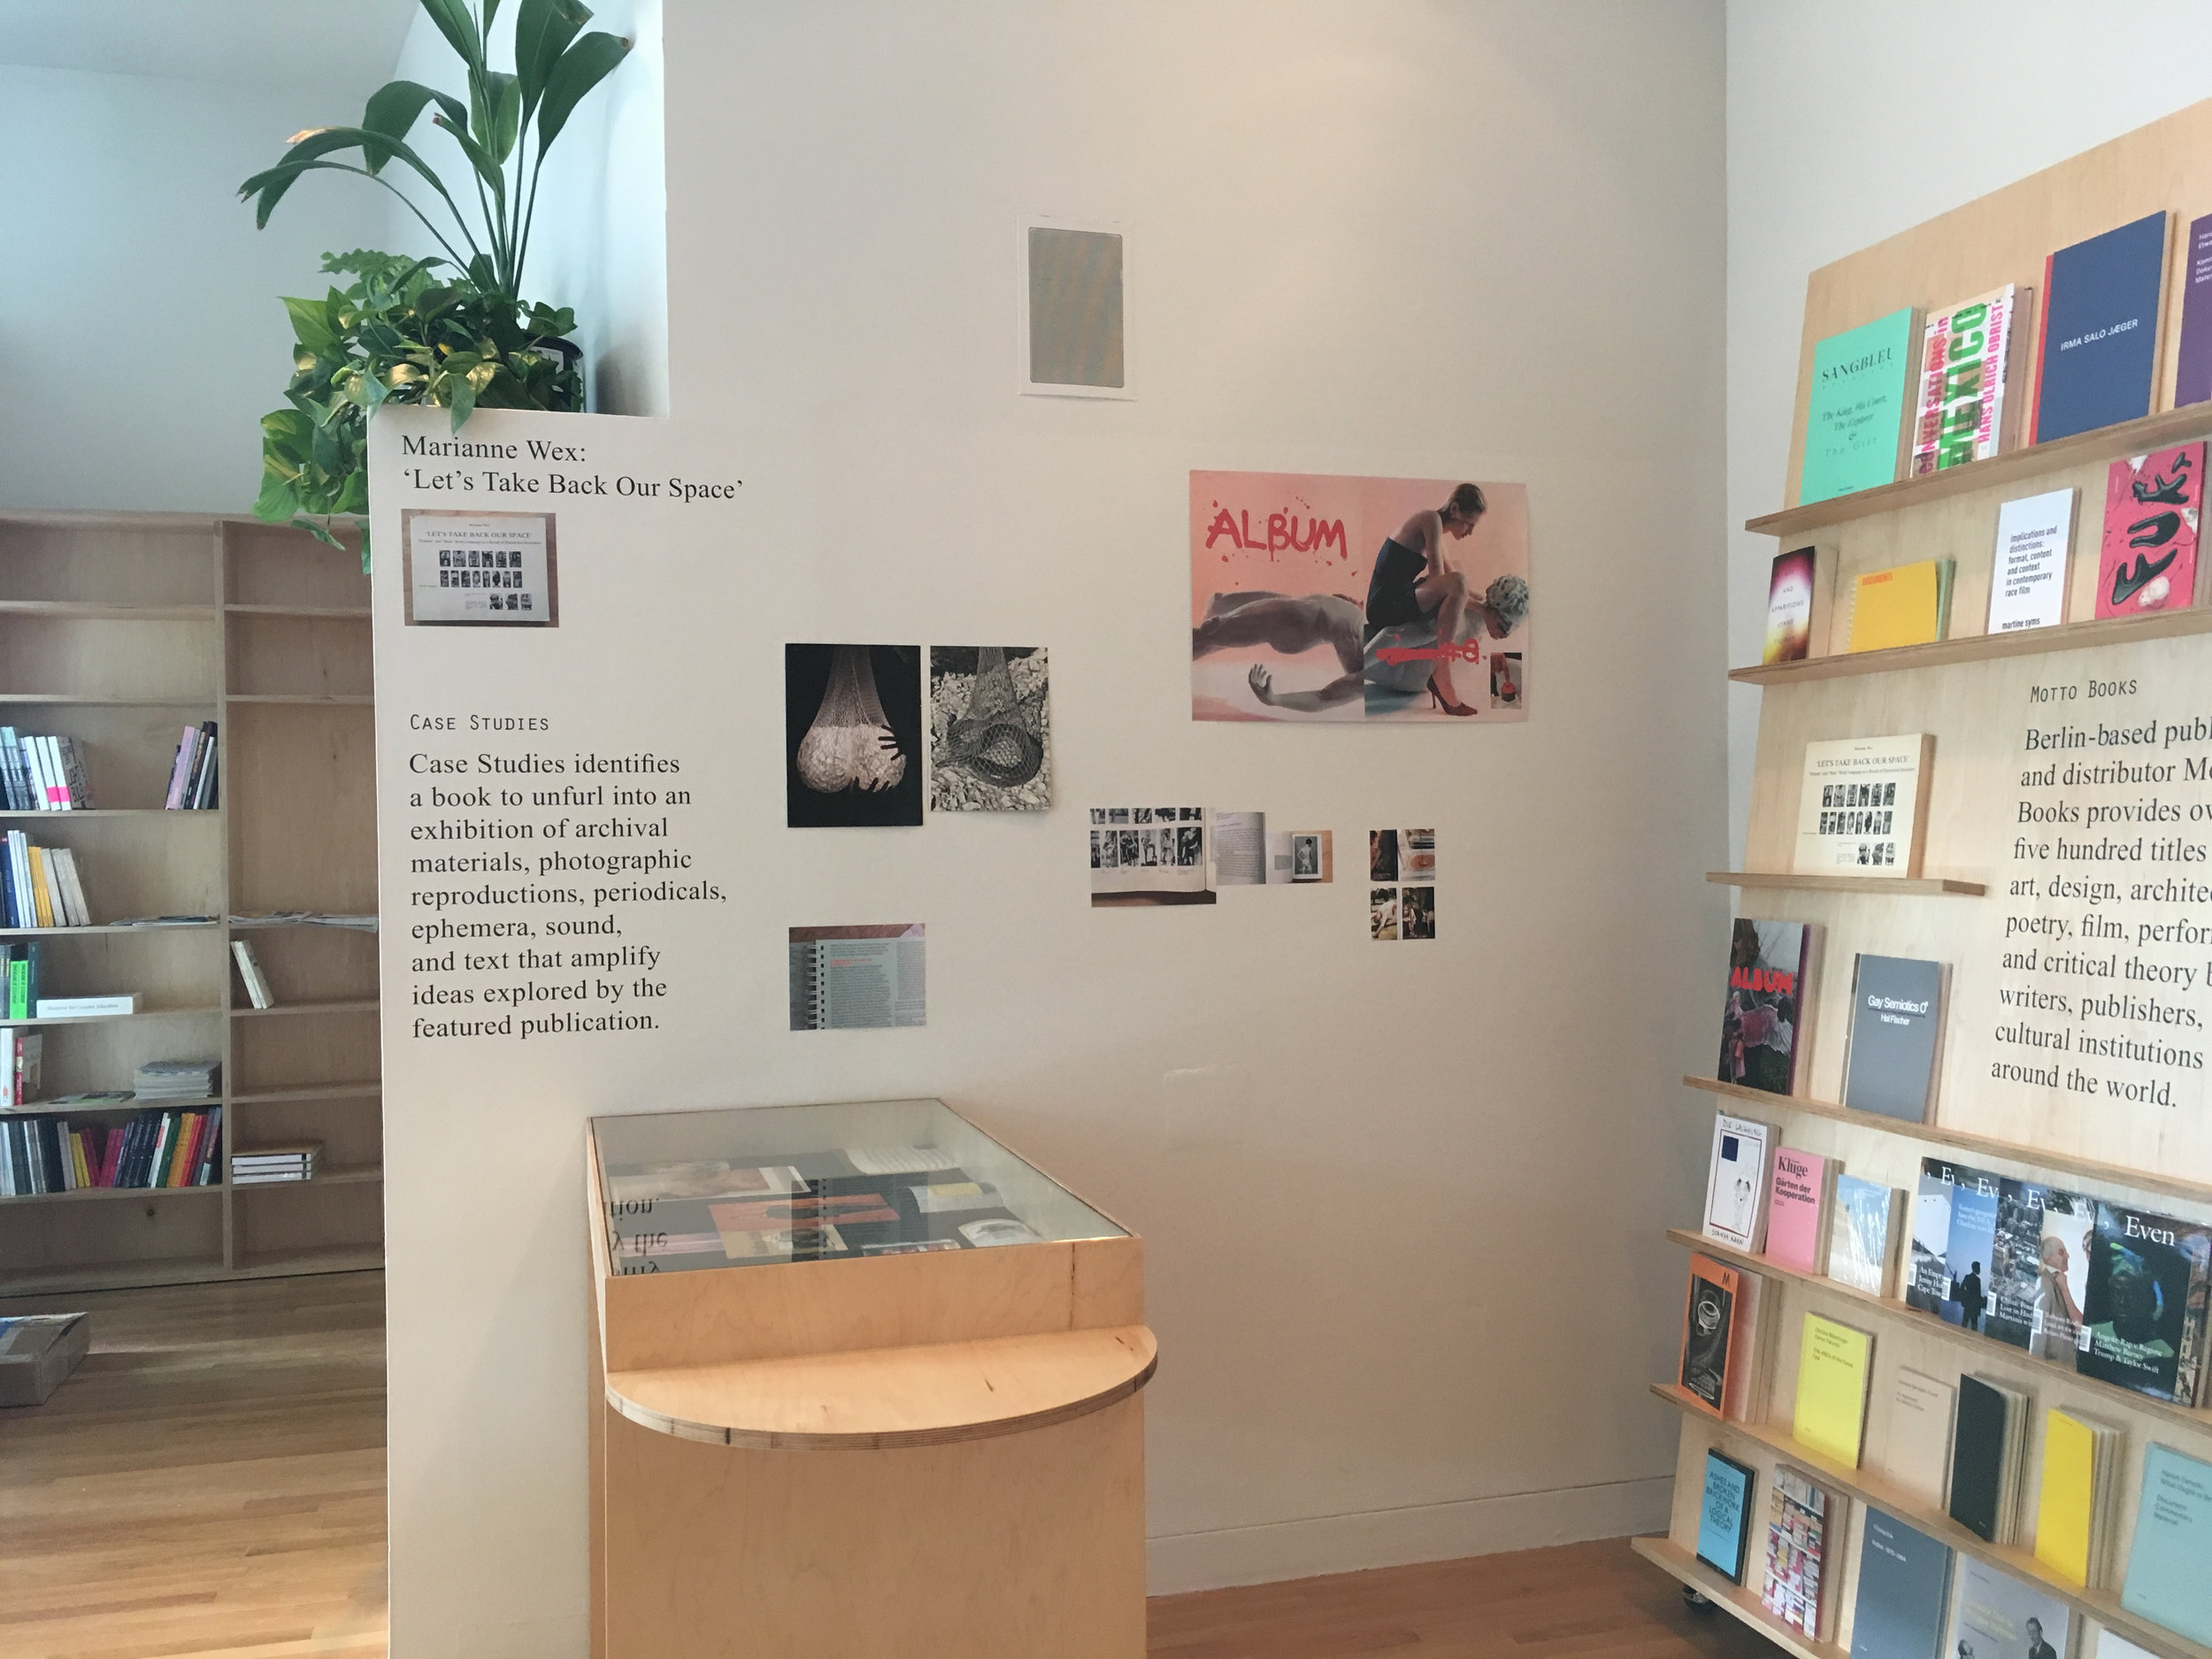 Installation view: Marianne Wex: 'Let's Take Back Our Space'  with printed matter from, by or about ALBUM (Eline Mugaas and Elise Storsveen), Jérôme Saint-Loubert Bié, Caravaggio, Hal Fischer, André Malraux, Martine Syms, Lynne Tillman, and Wolfgang Tillmans.